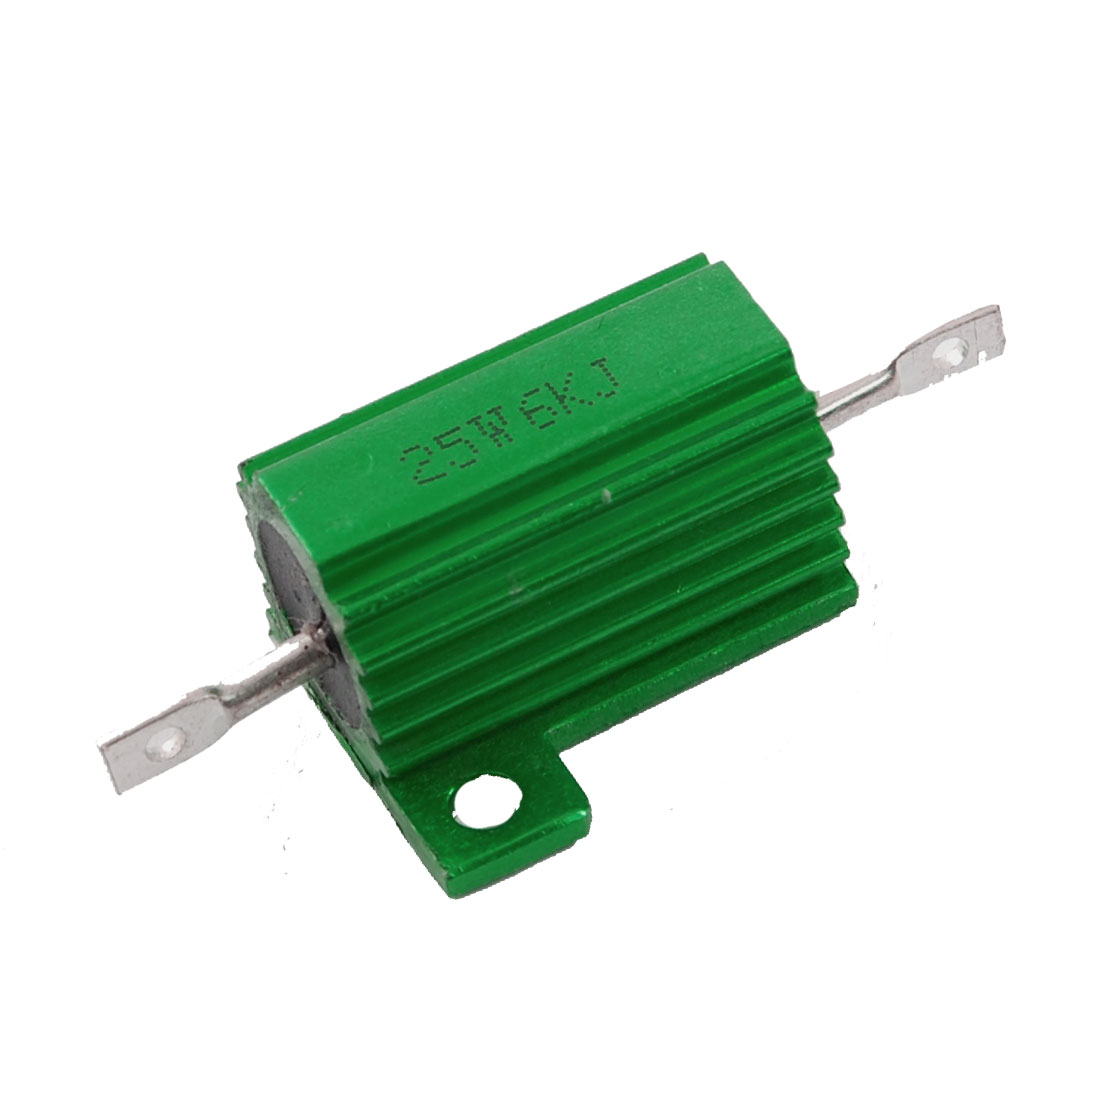 6K Ohm Screw Tap Mounted Aluminum Housed Wirewound Resistor 25W